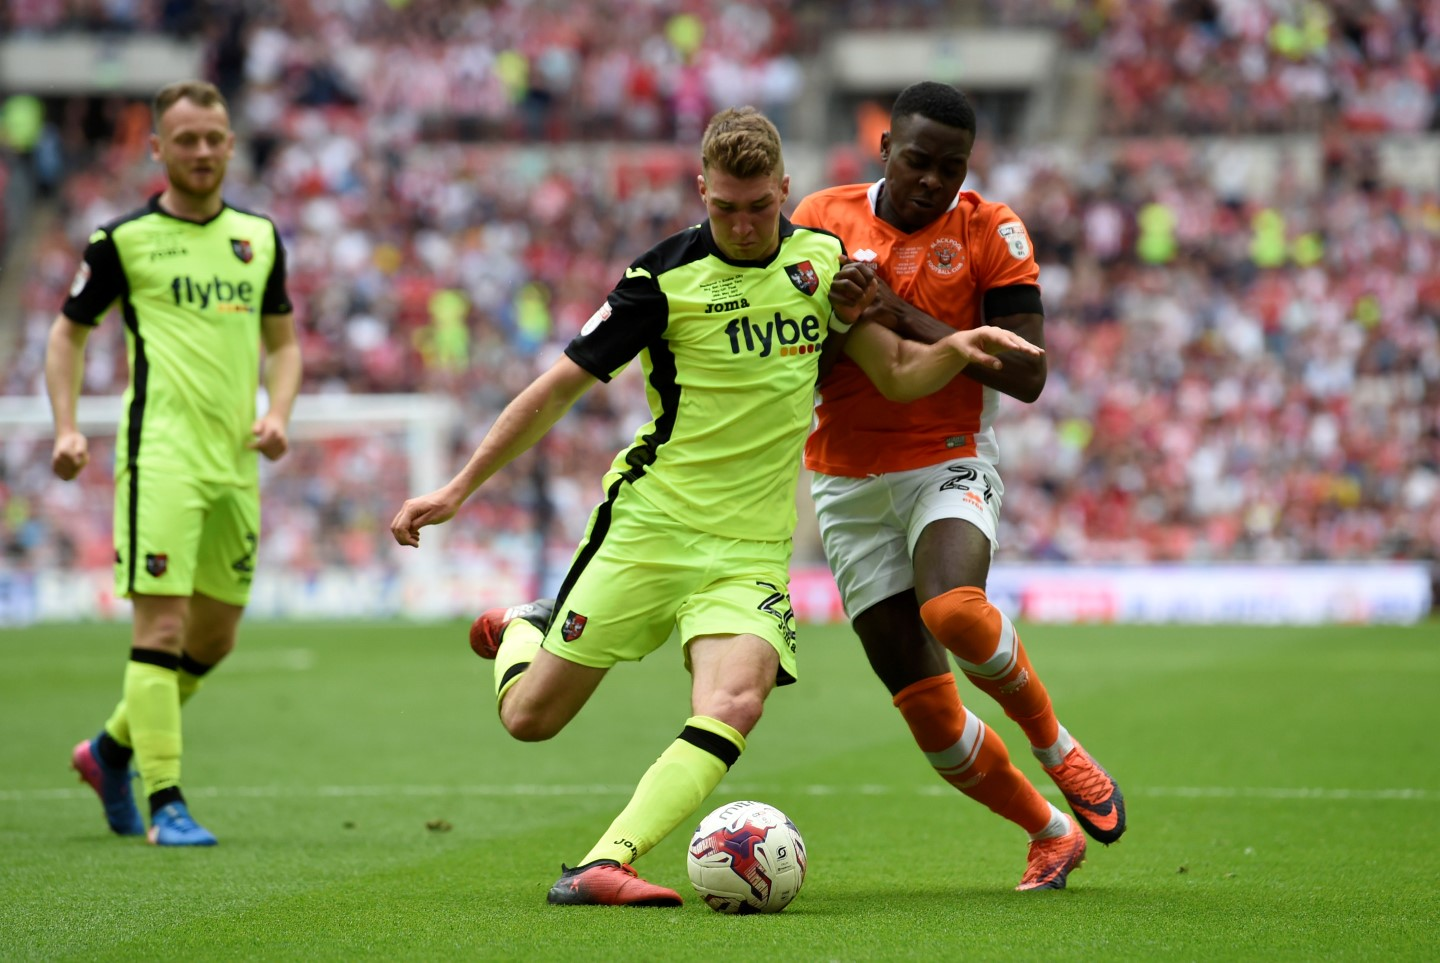 Jack Stacey in action for Exeter in last season's League Two play-off final at Wembley